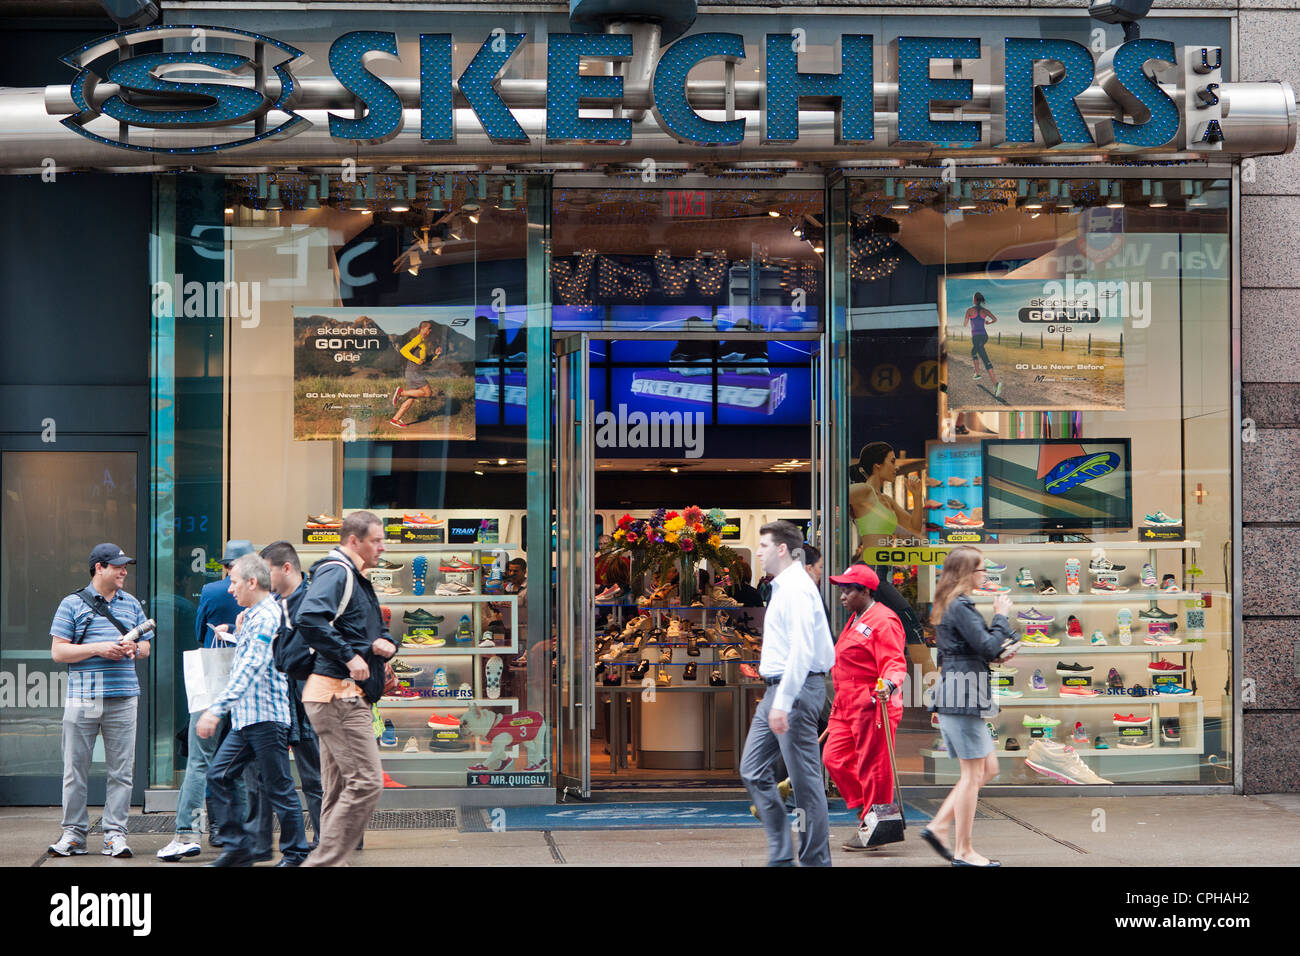 skechers shape ups outlet store